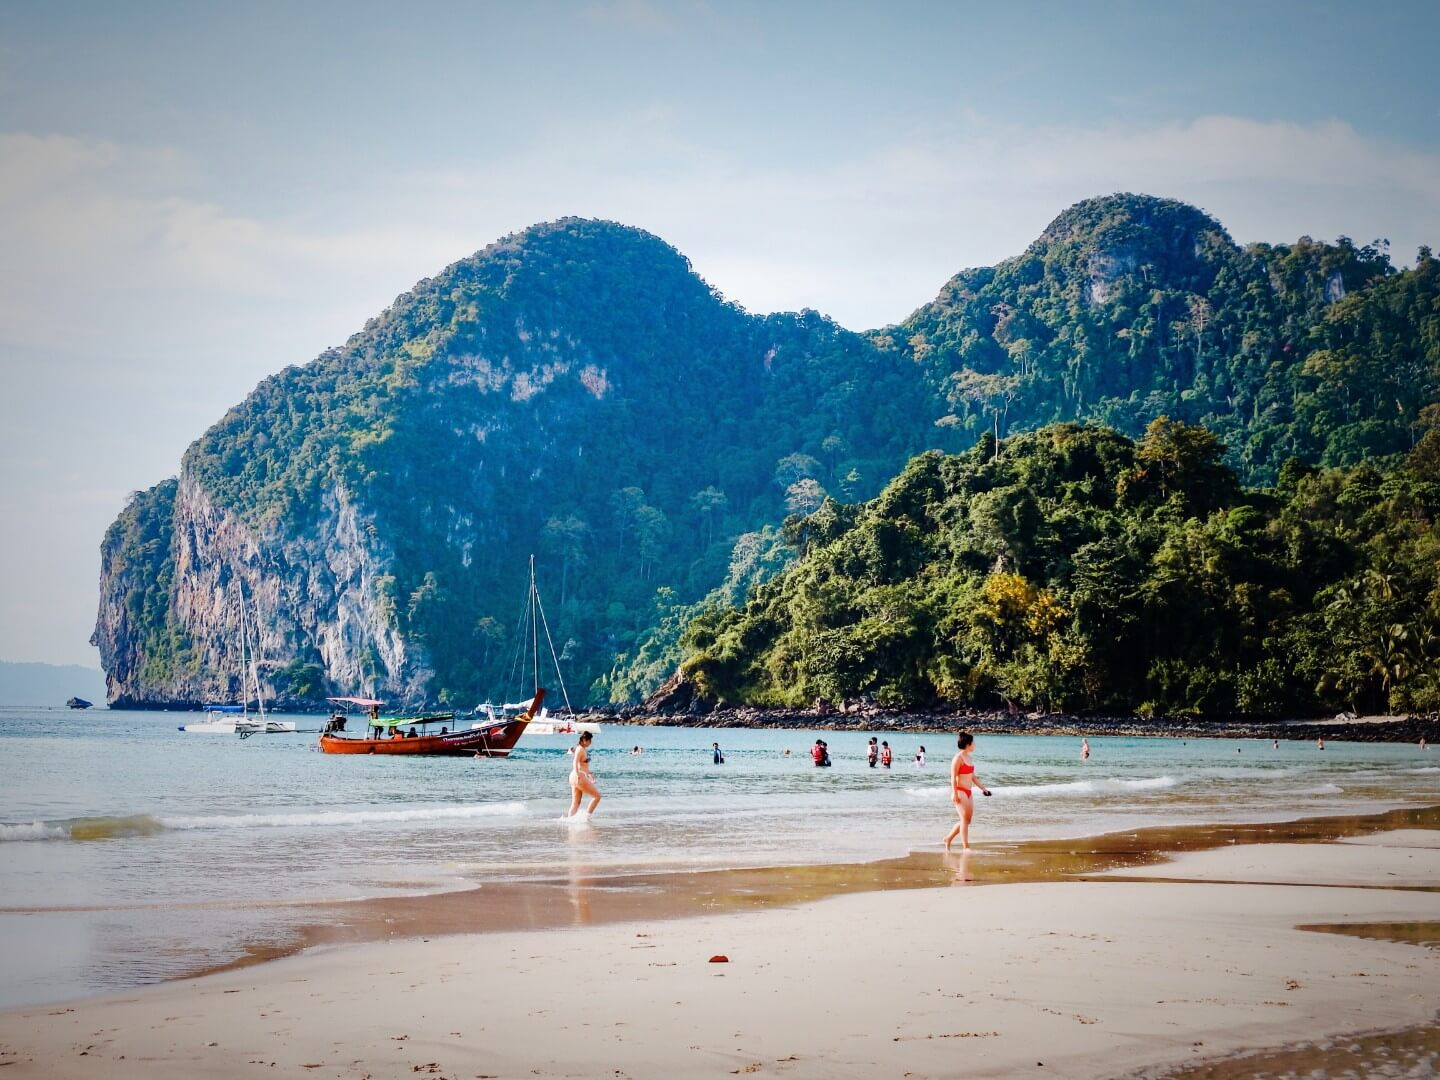 Koh Mook, Thailand Island Hopping - A guide to off the beaten path Thai Island destinations